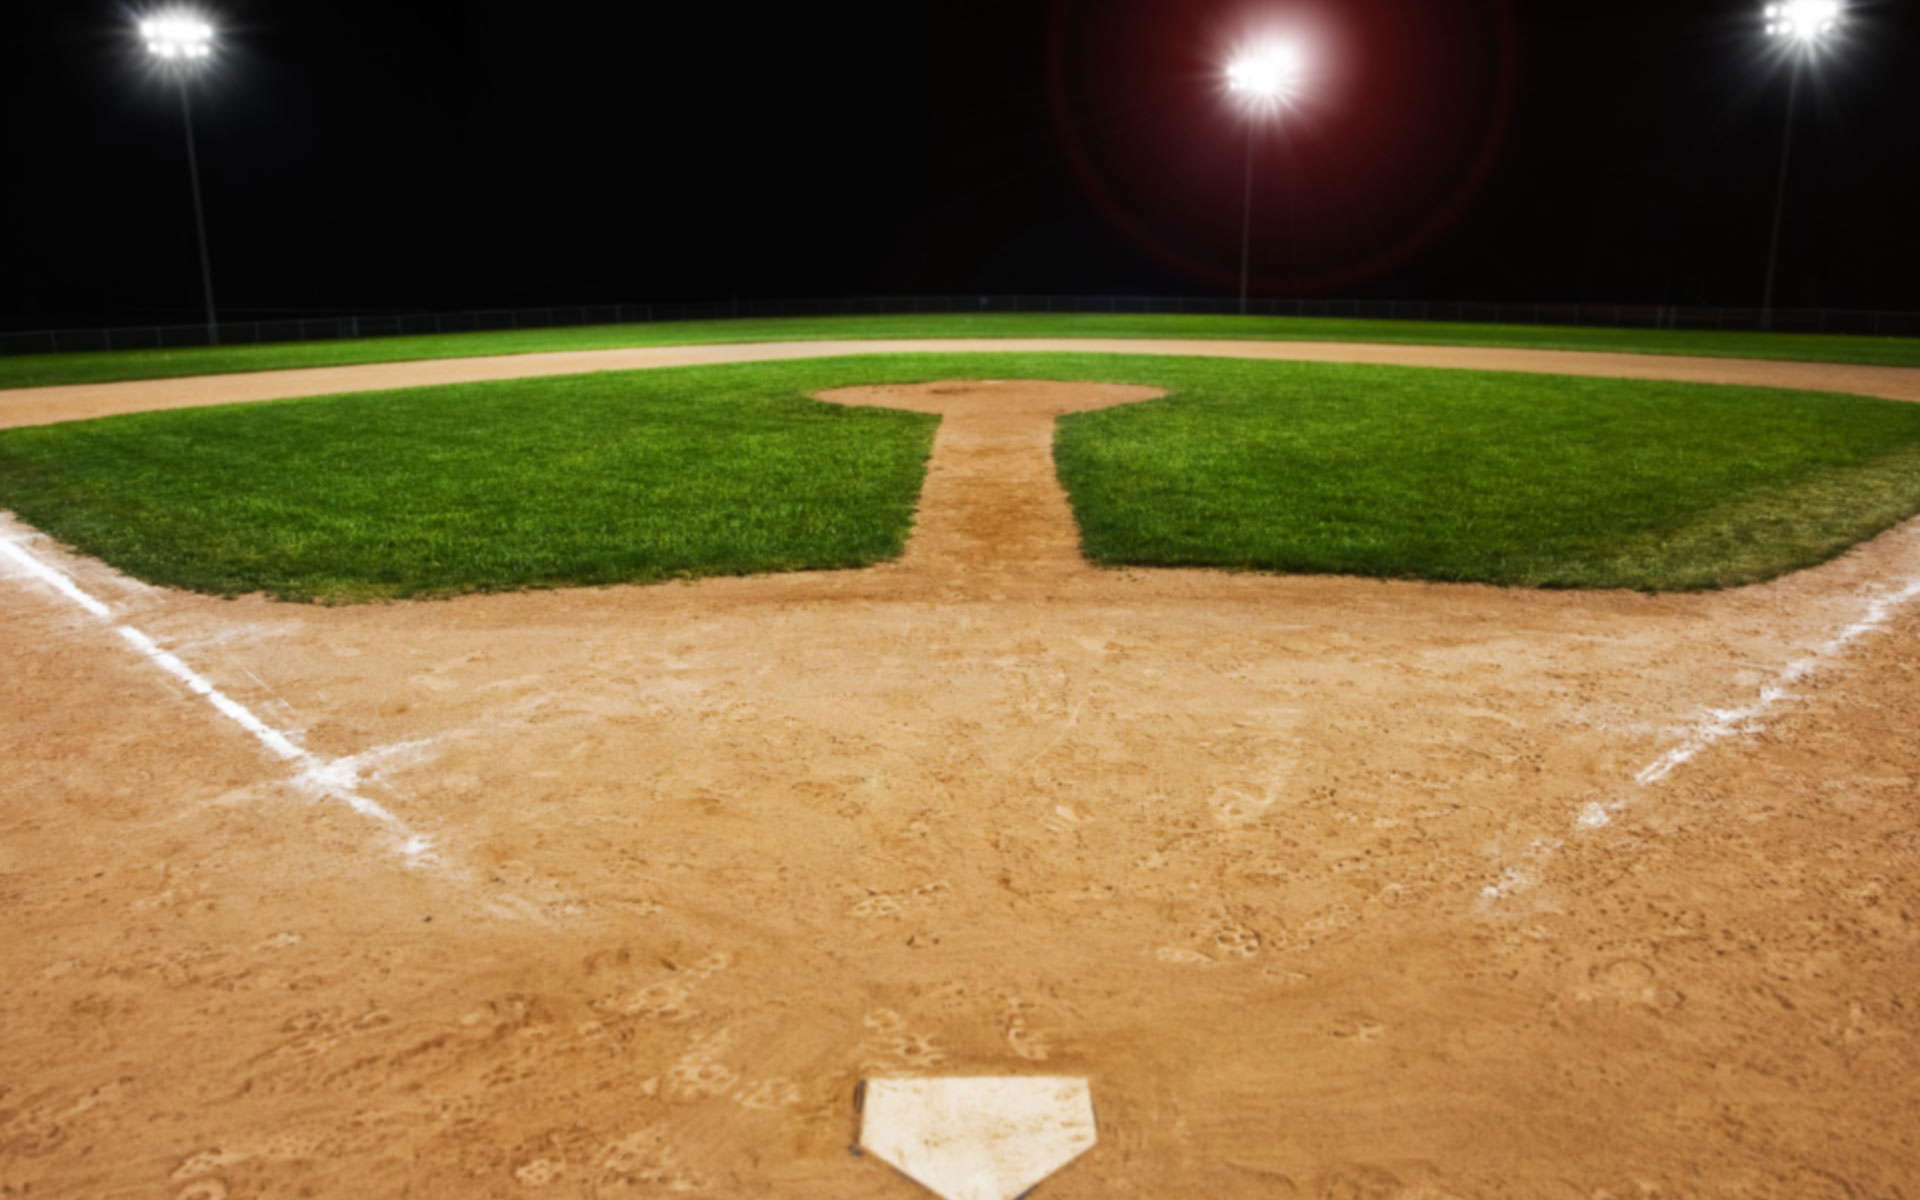 Baseball Wallpapers Of Stadium Free Images Download Hd